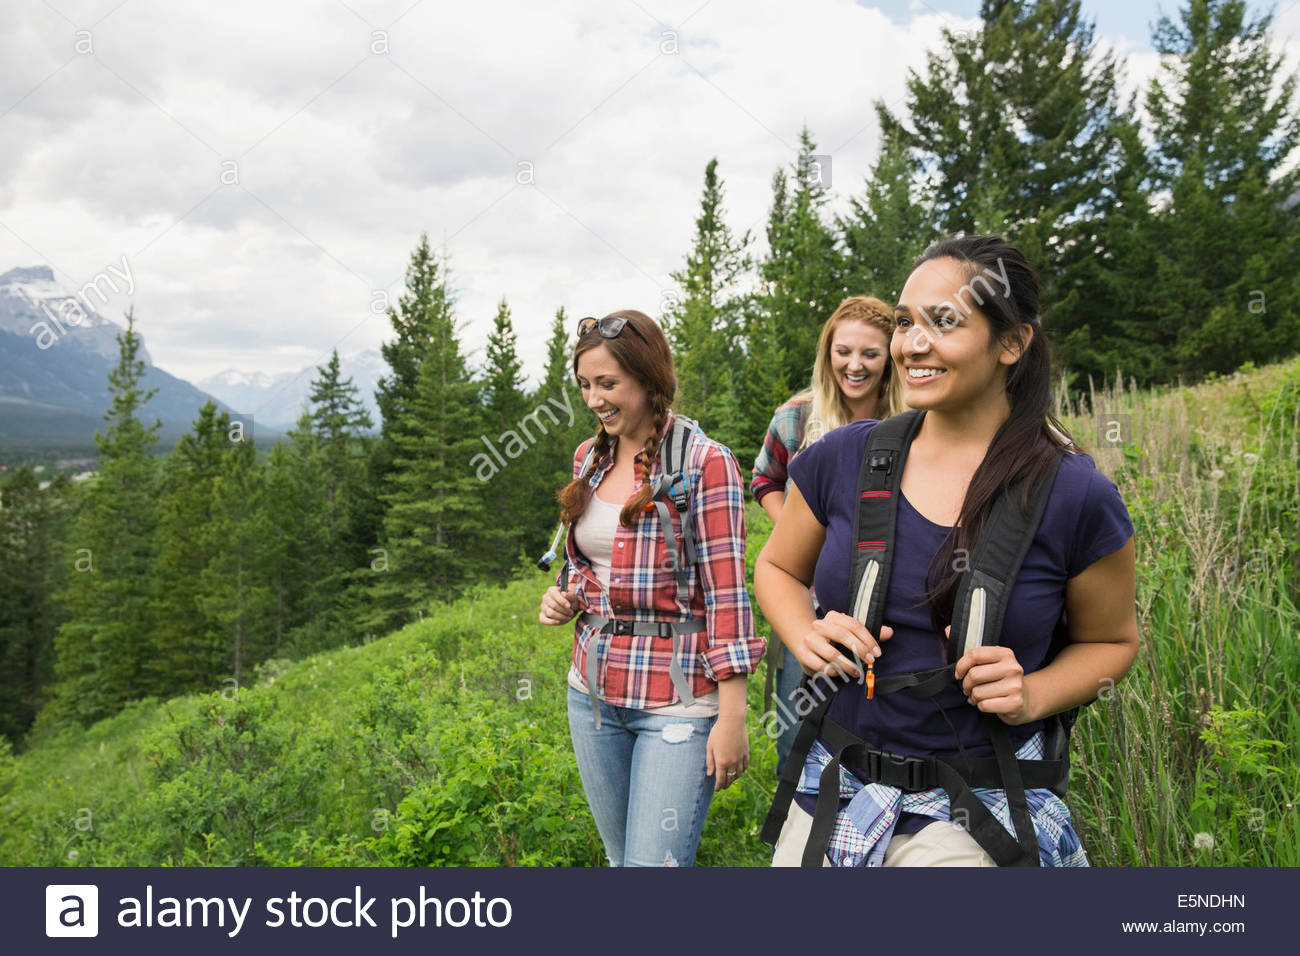 Friends hiking on trail near mountains - Stock Image